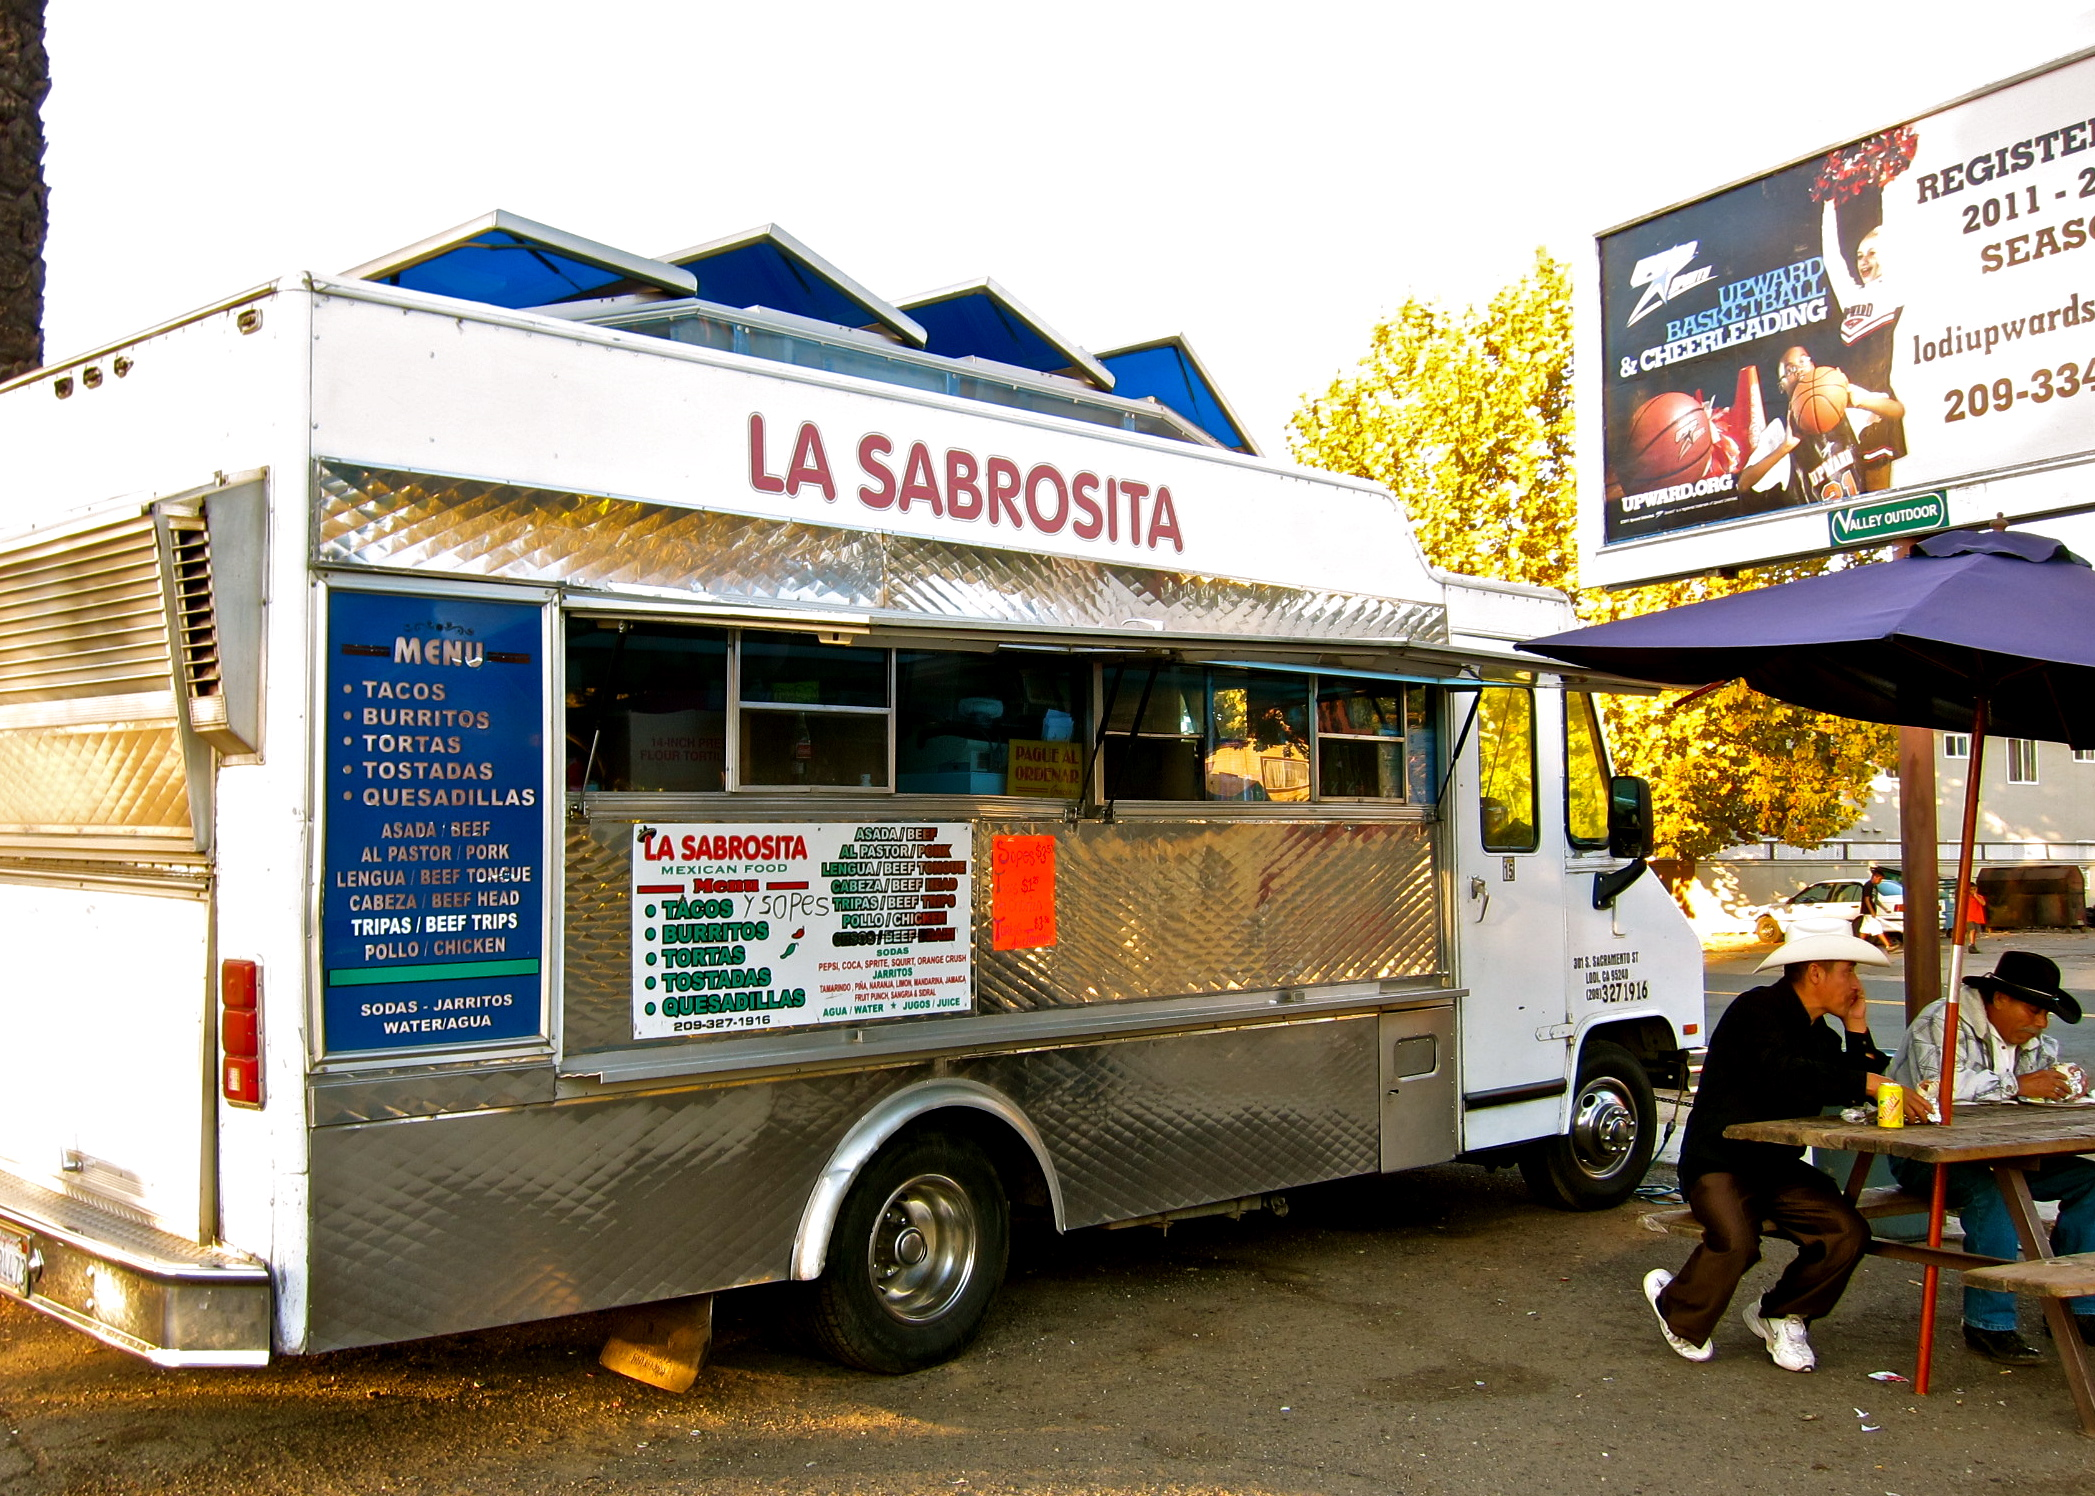 Organ Meat Tacos And Burritos At Lodis Taco Trucks Theres About One Truck For Every Ten People Of Mexican Descent In Lodi